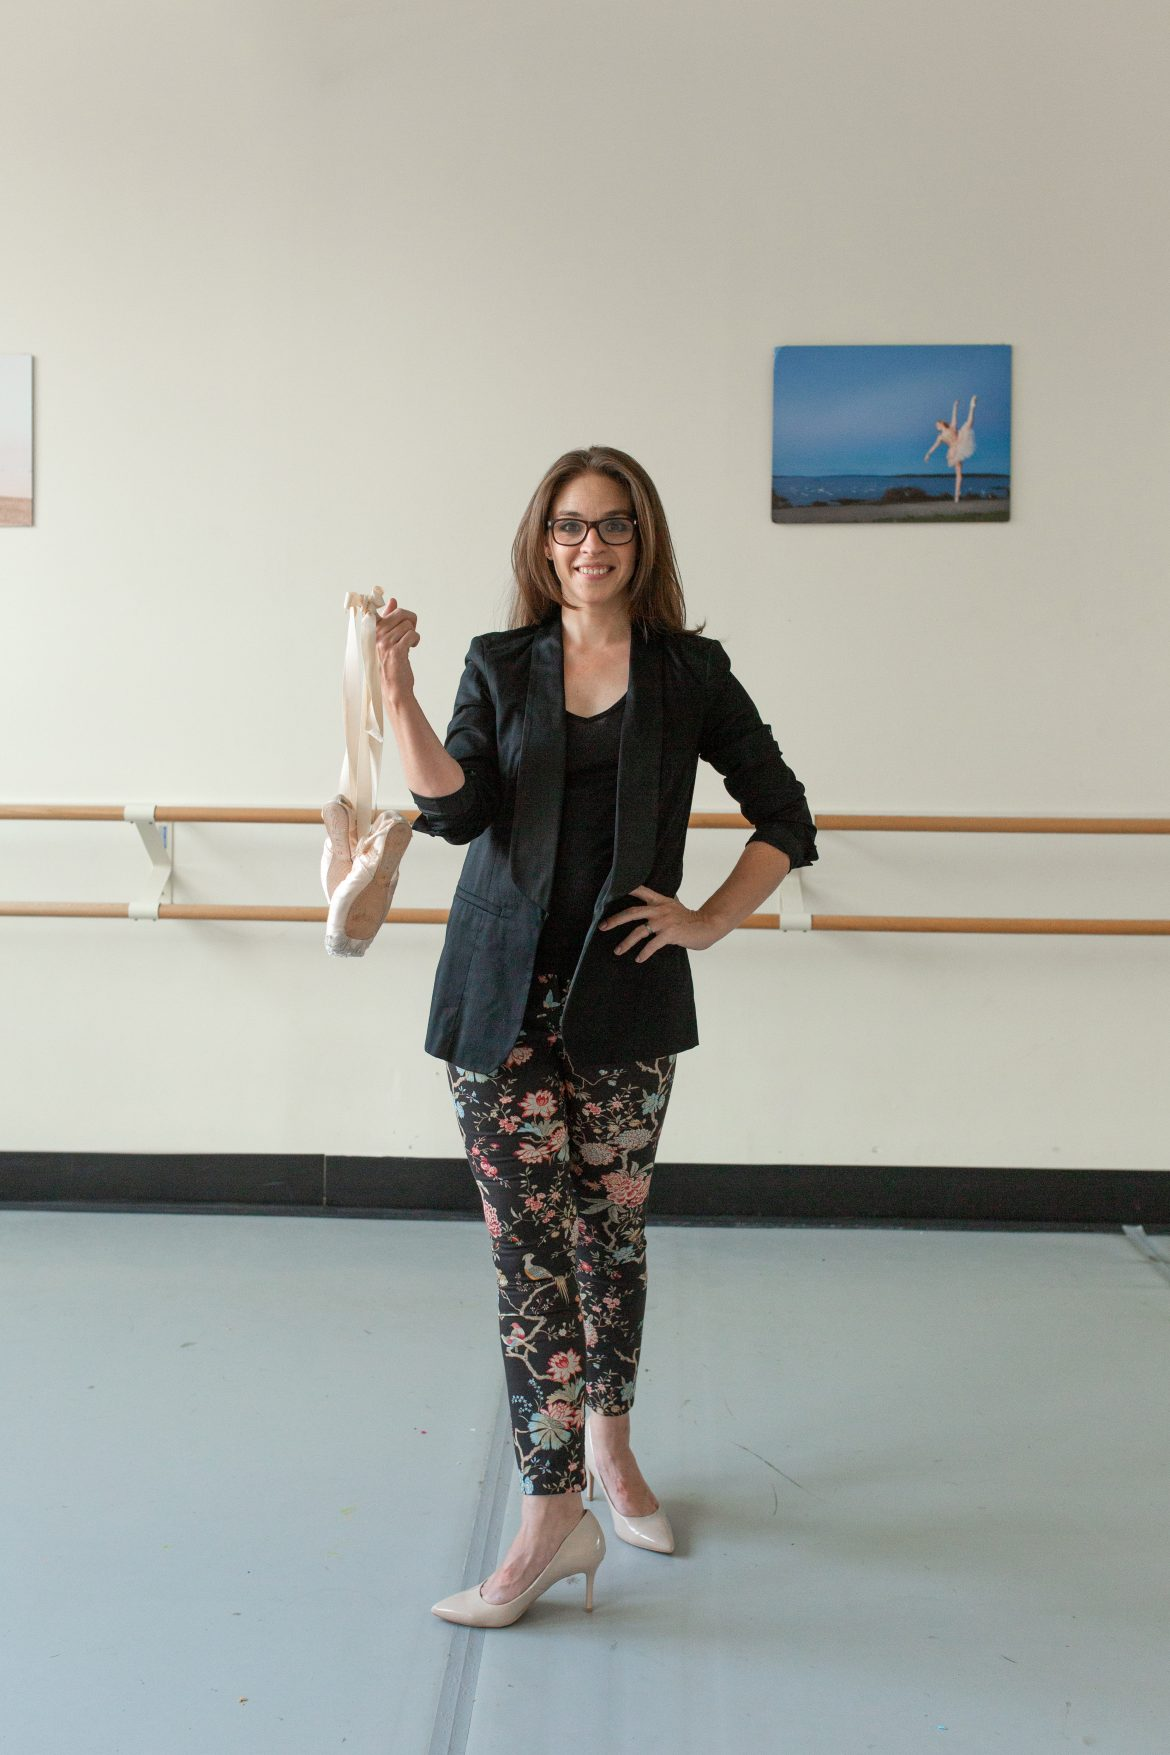 MAINE STYLE: On Point with Portland Ballet Artistic/Executive Director Nell Shipman